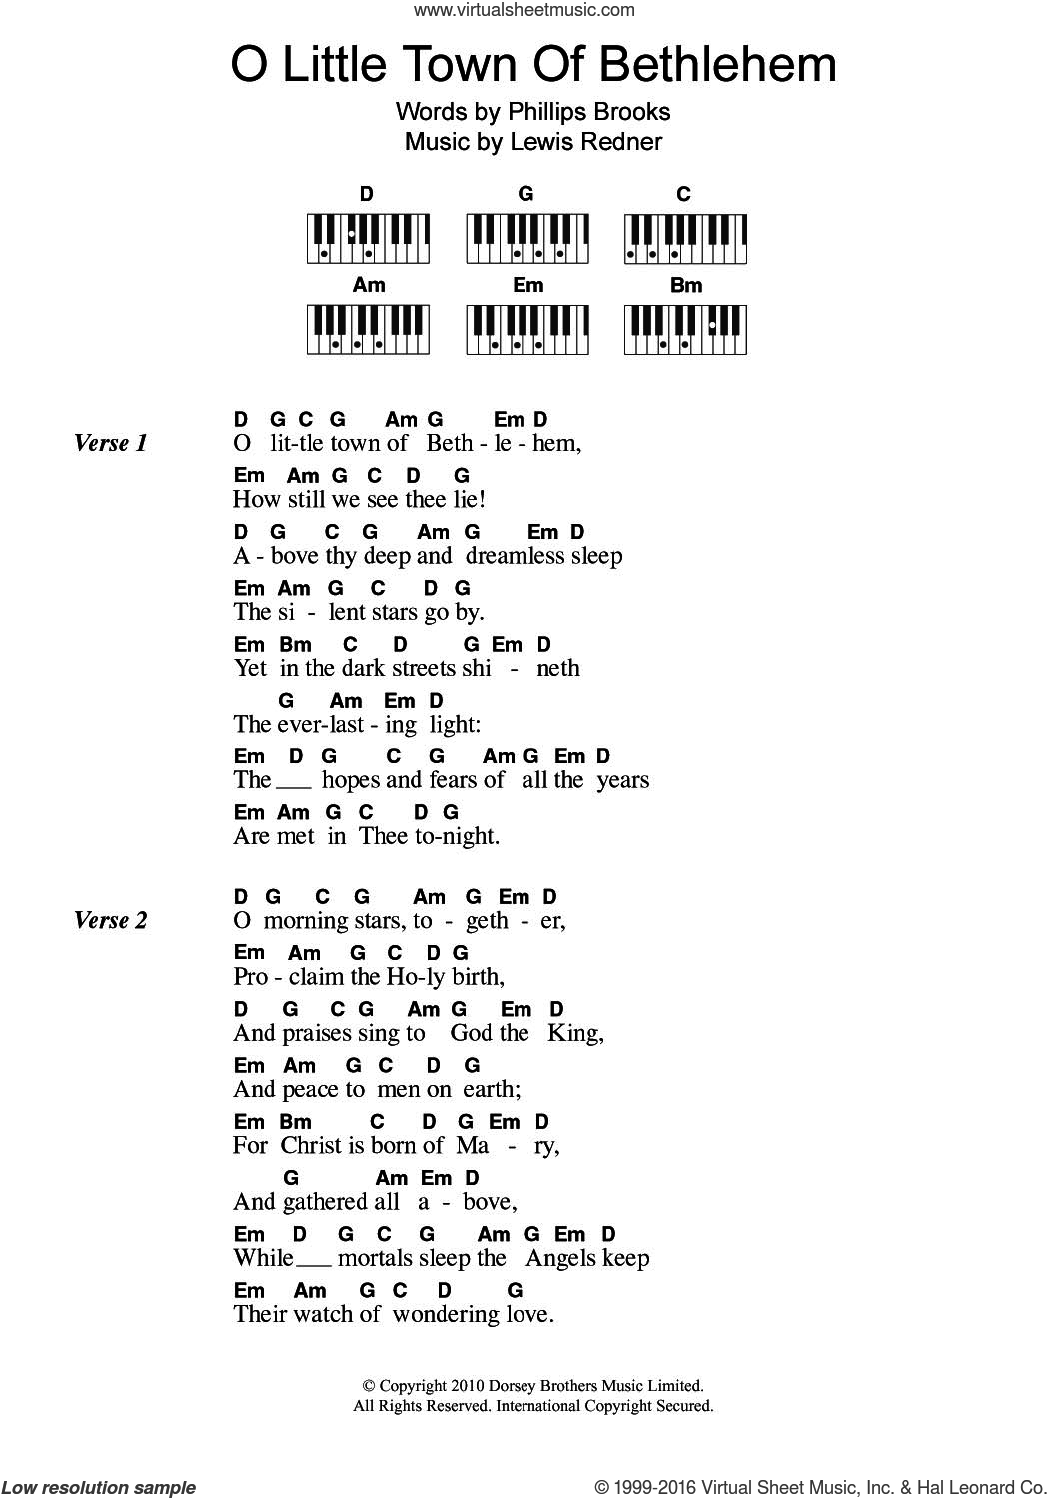 O Little Town Of Bethlehem sheet music for piano solo (chords, lyrics, melody) by Lewis Redner, Miscellaneous and Phillips Brooks, intermediate piano (chords, lyrics, melody)